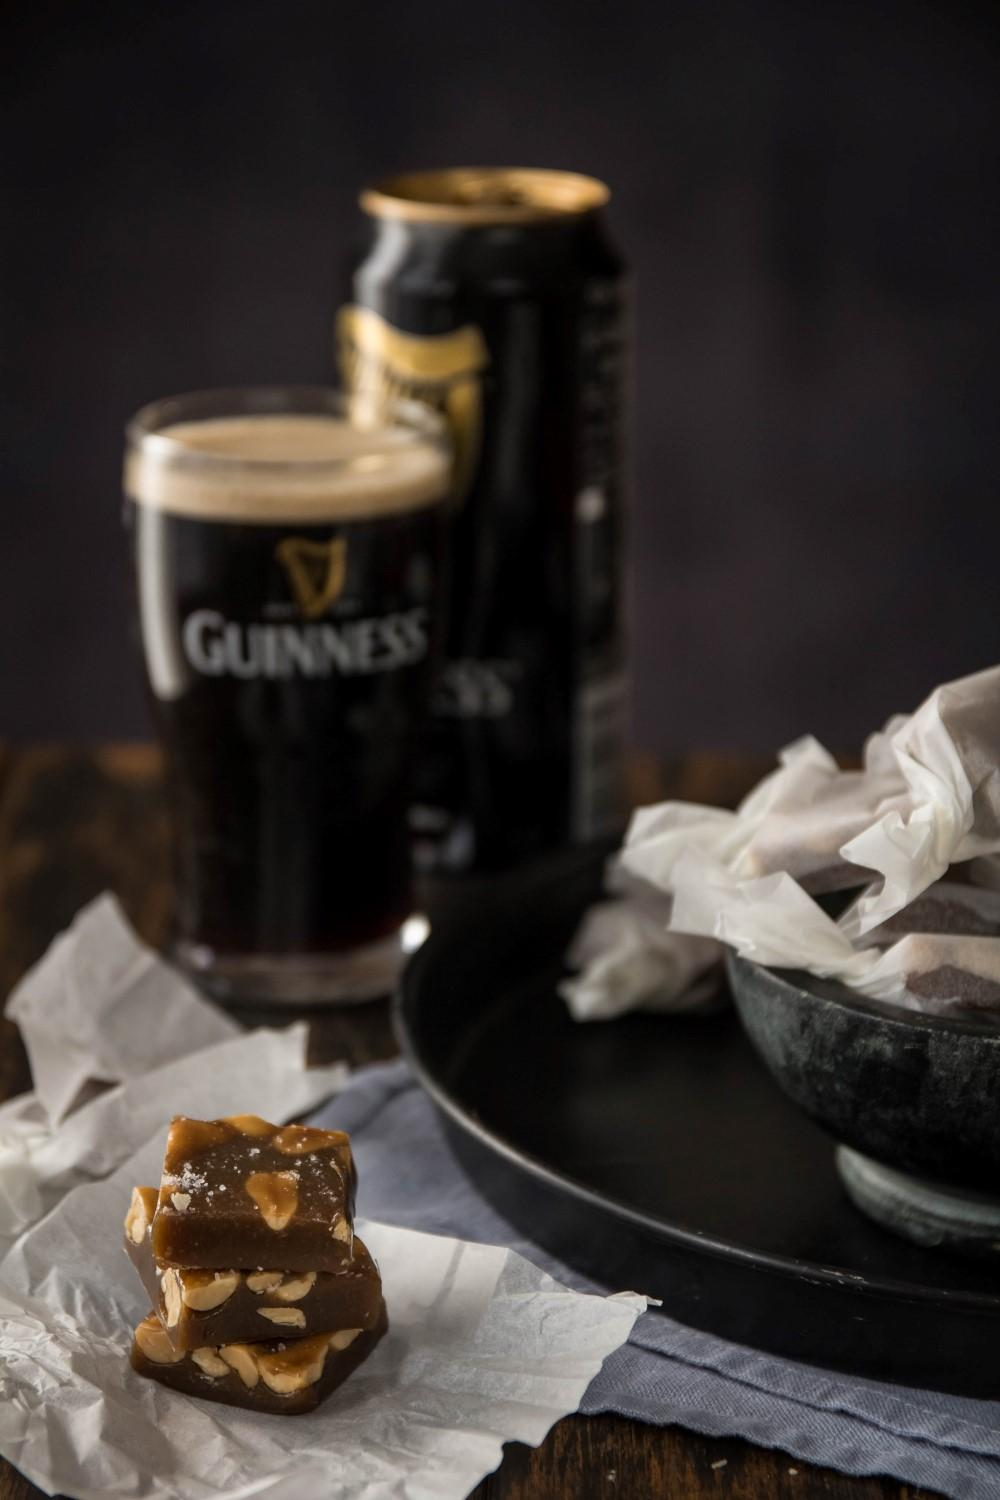 Use Your Noodles - Guinness Caramels With Salted Peanuts